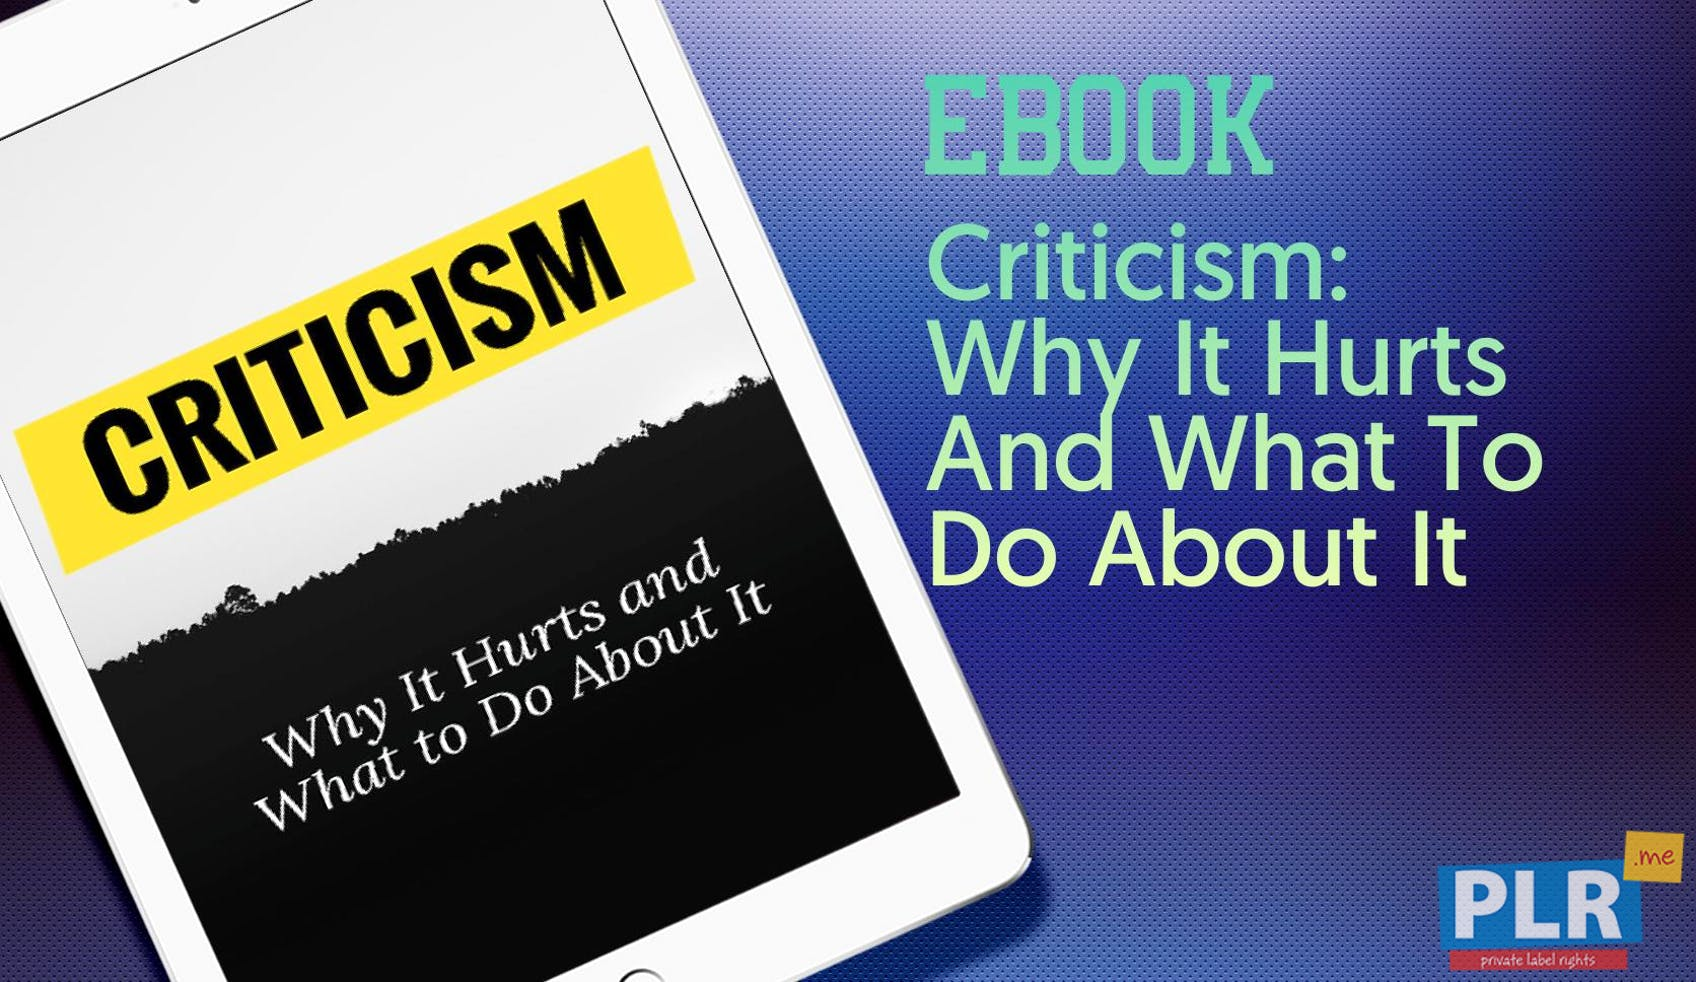 Criticism: Why It Hurts And What To Do About It